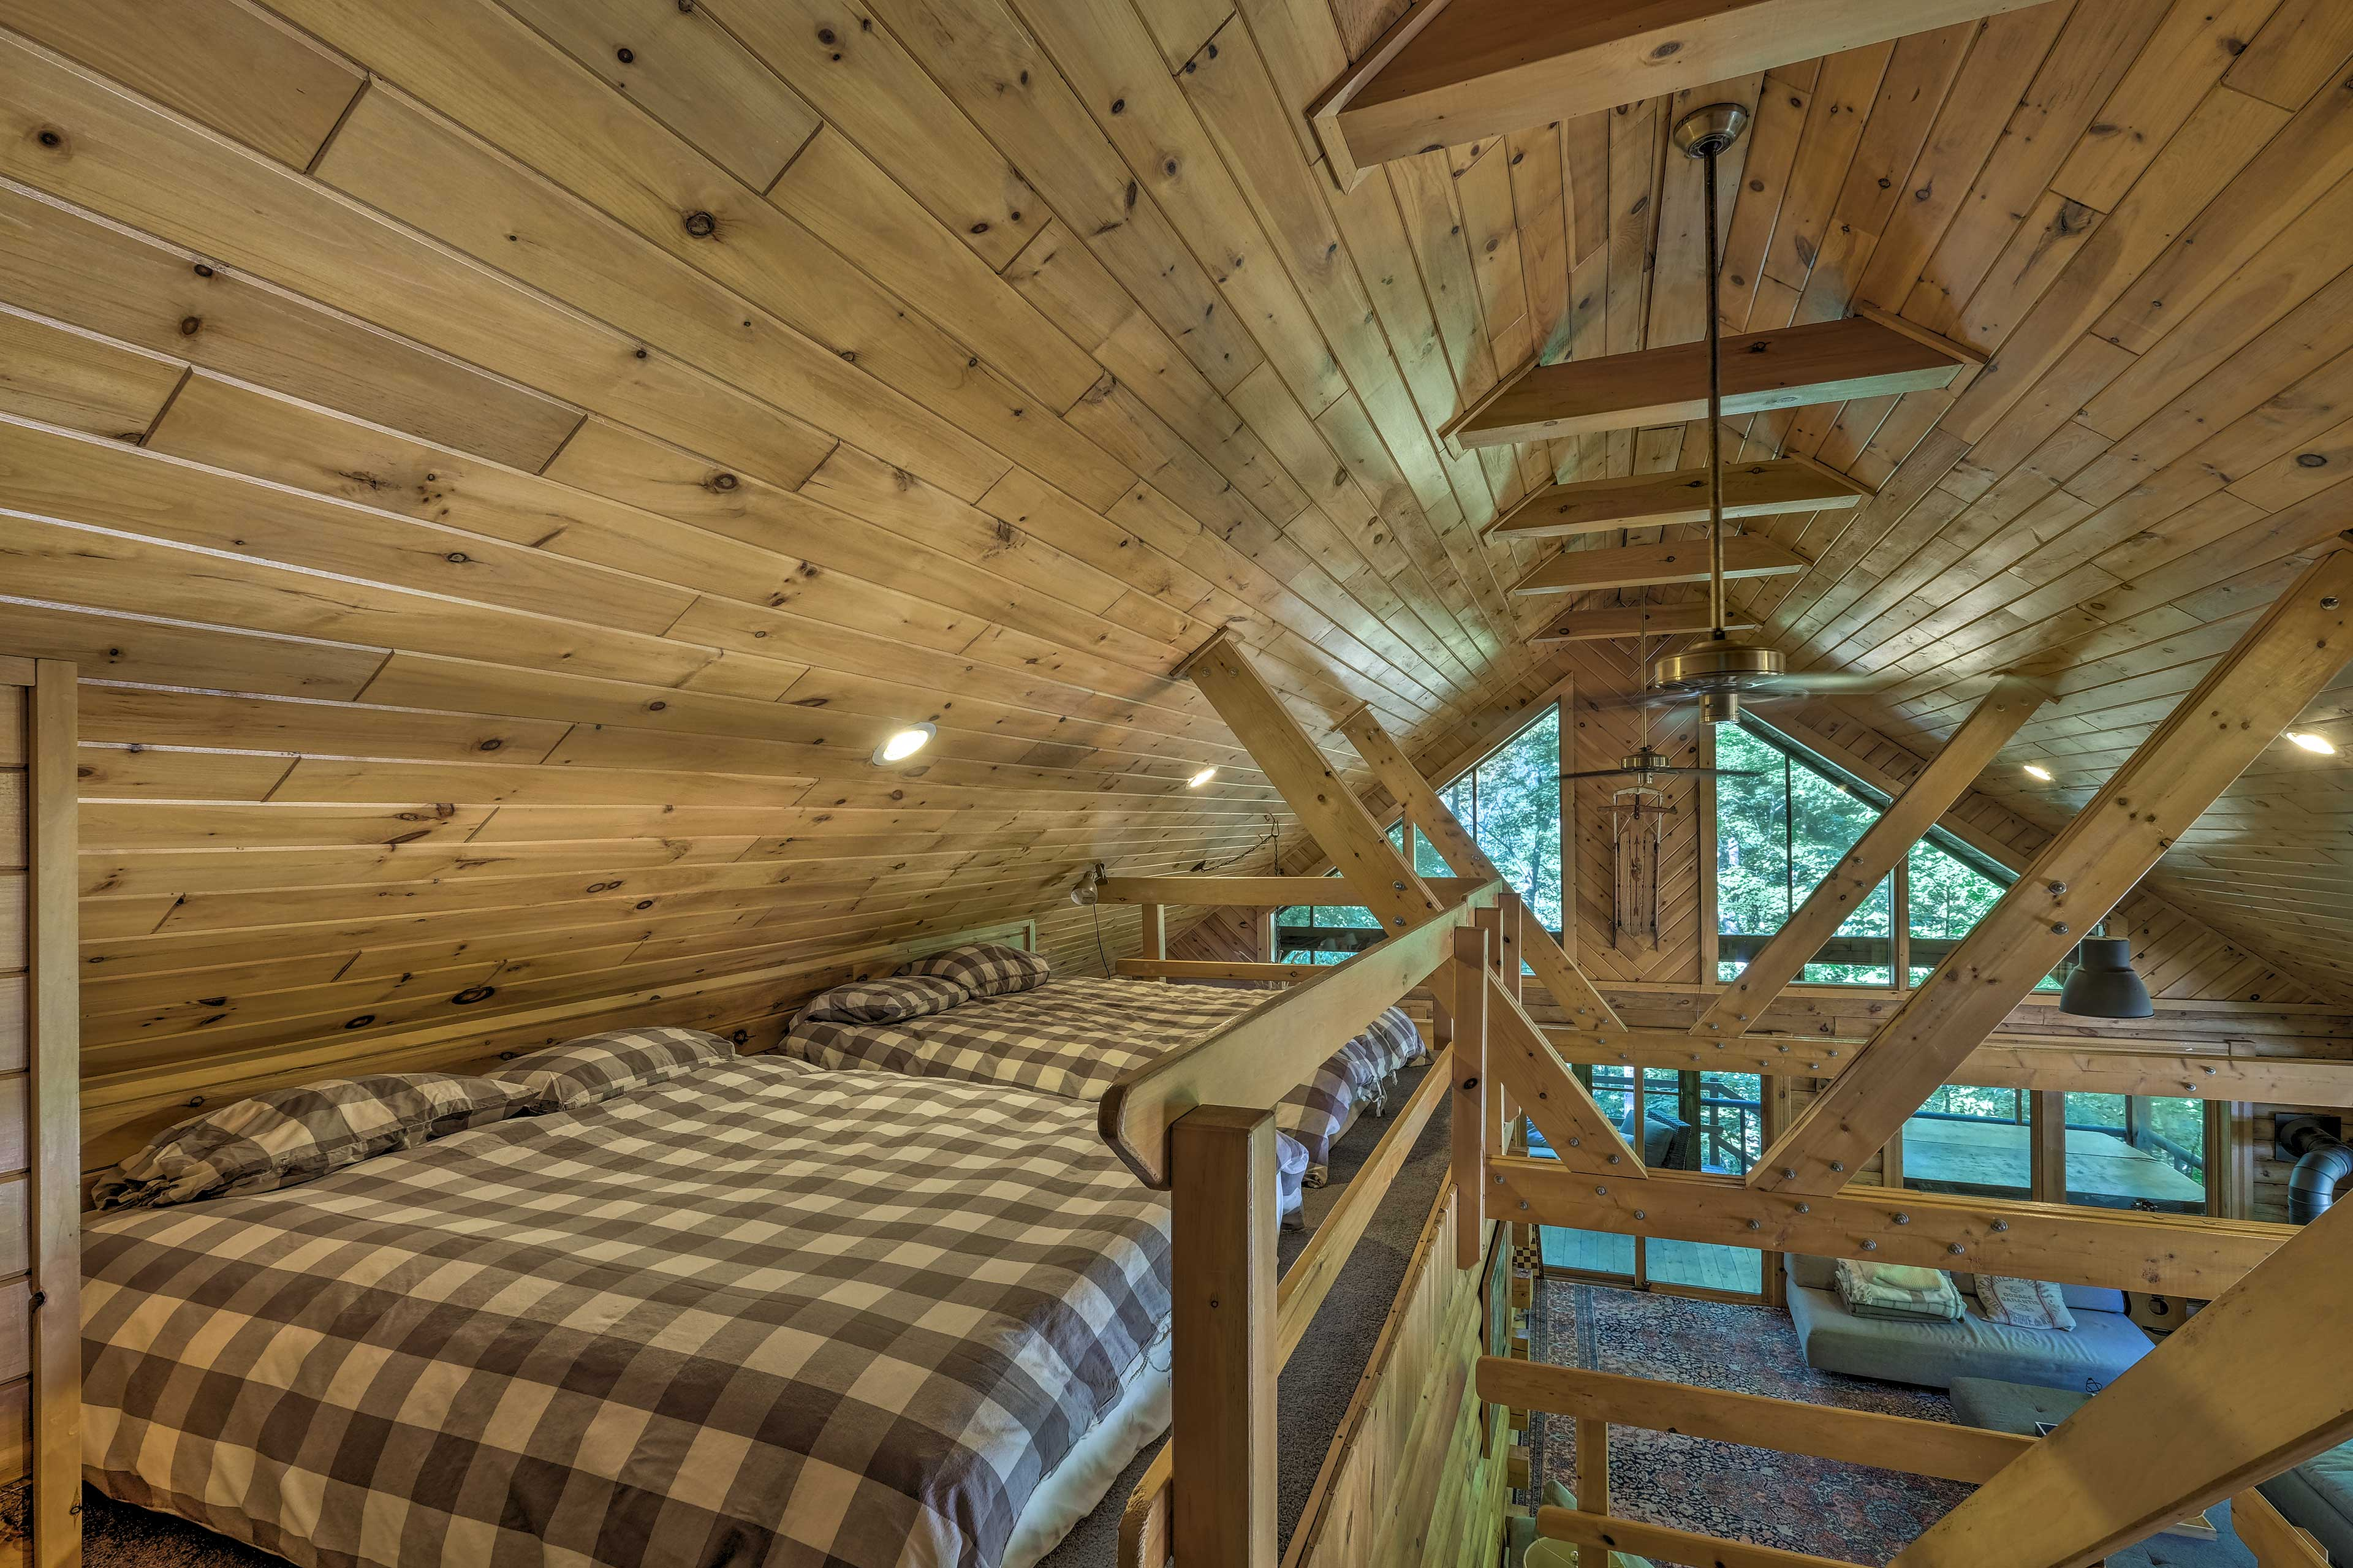 The loft also has additional sleeping space.